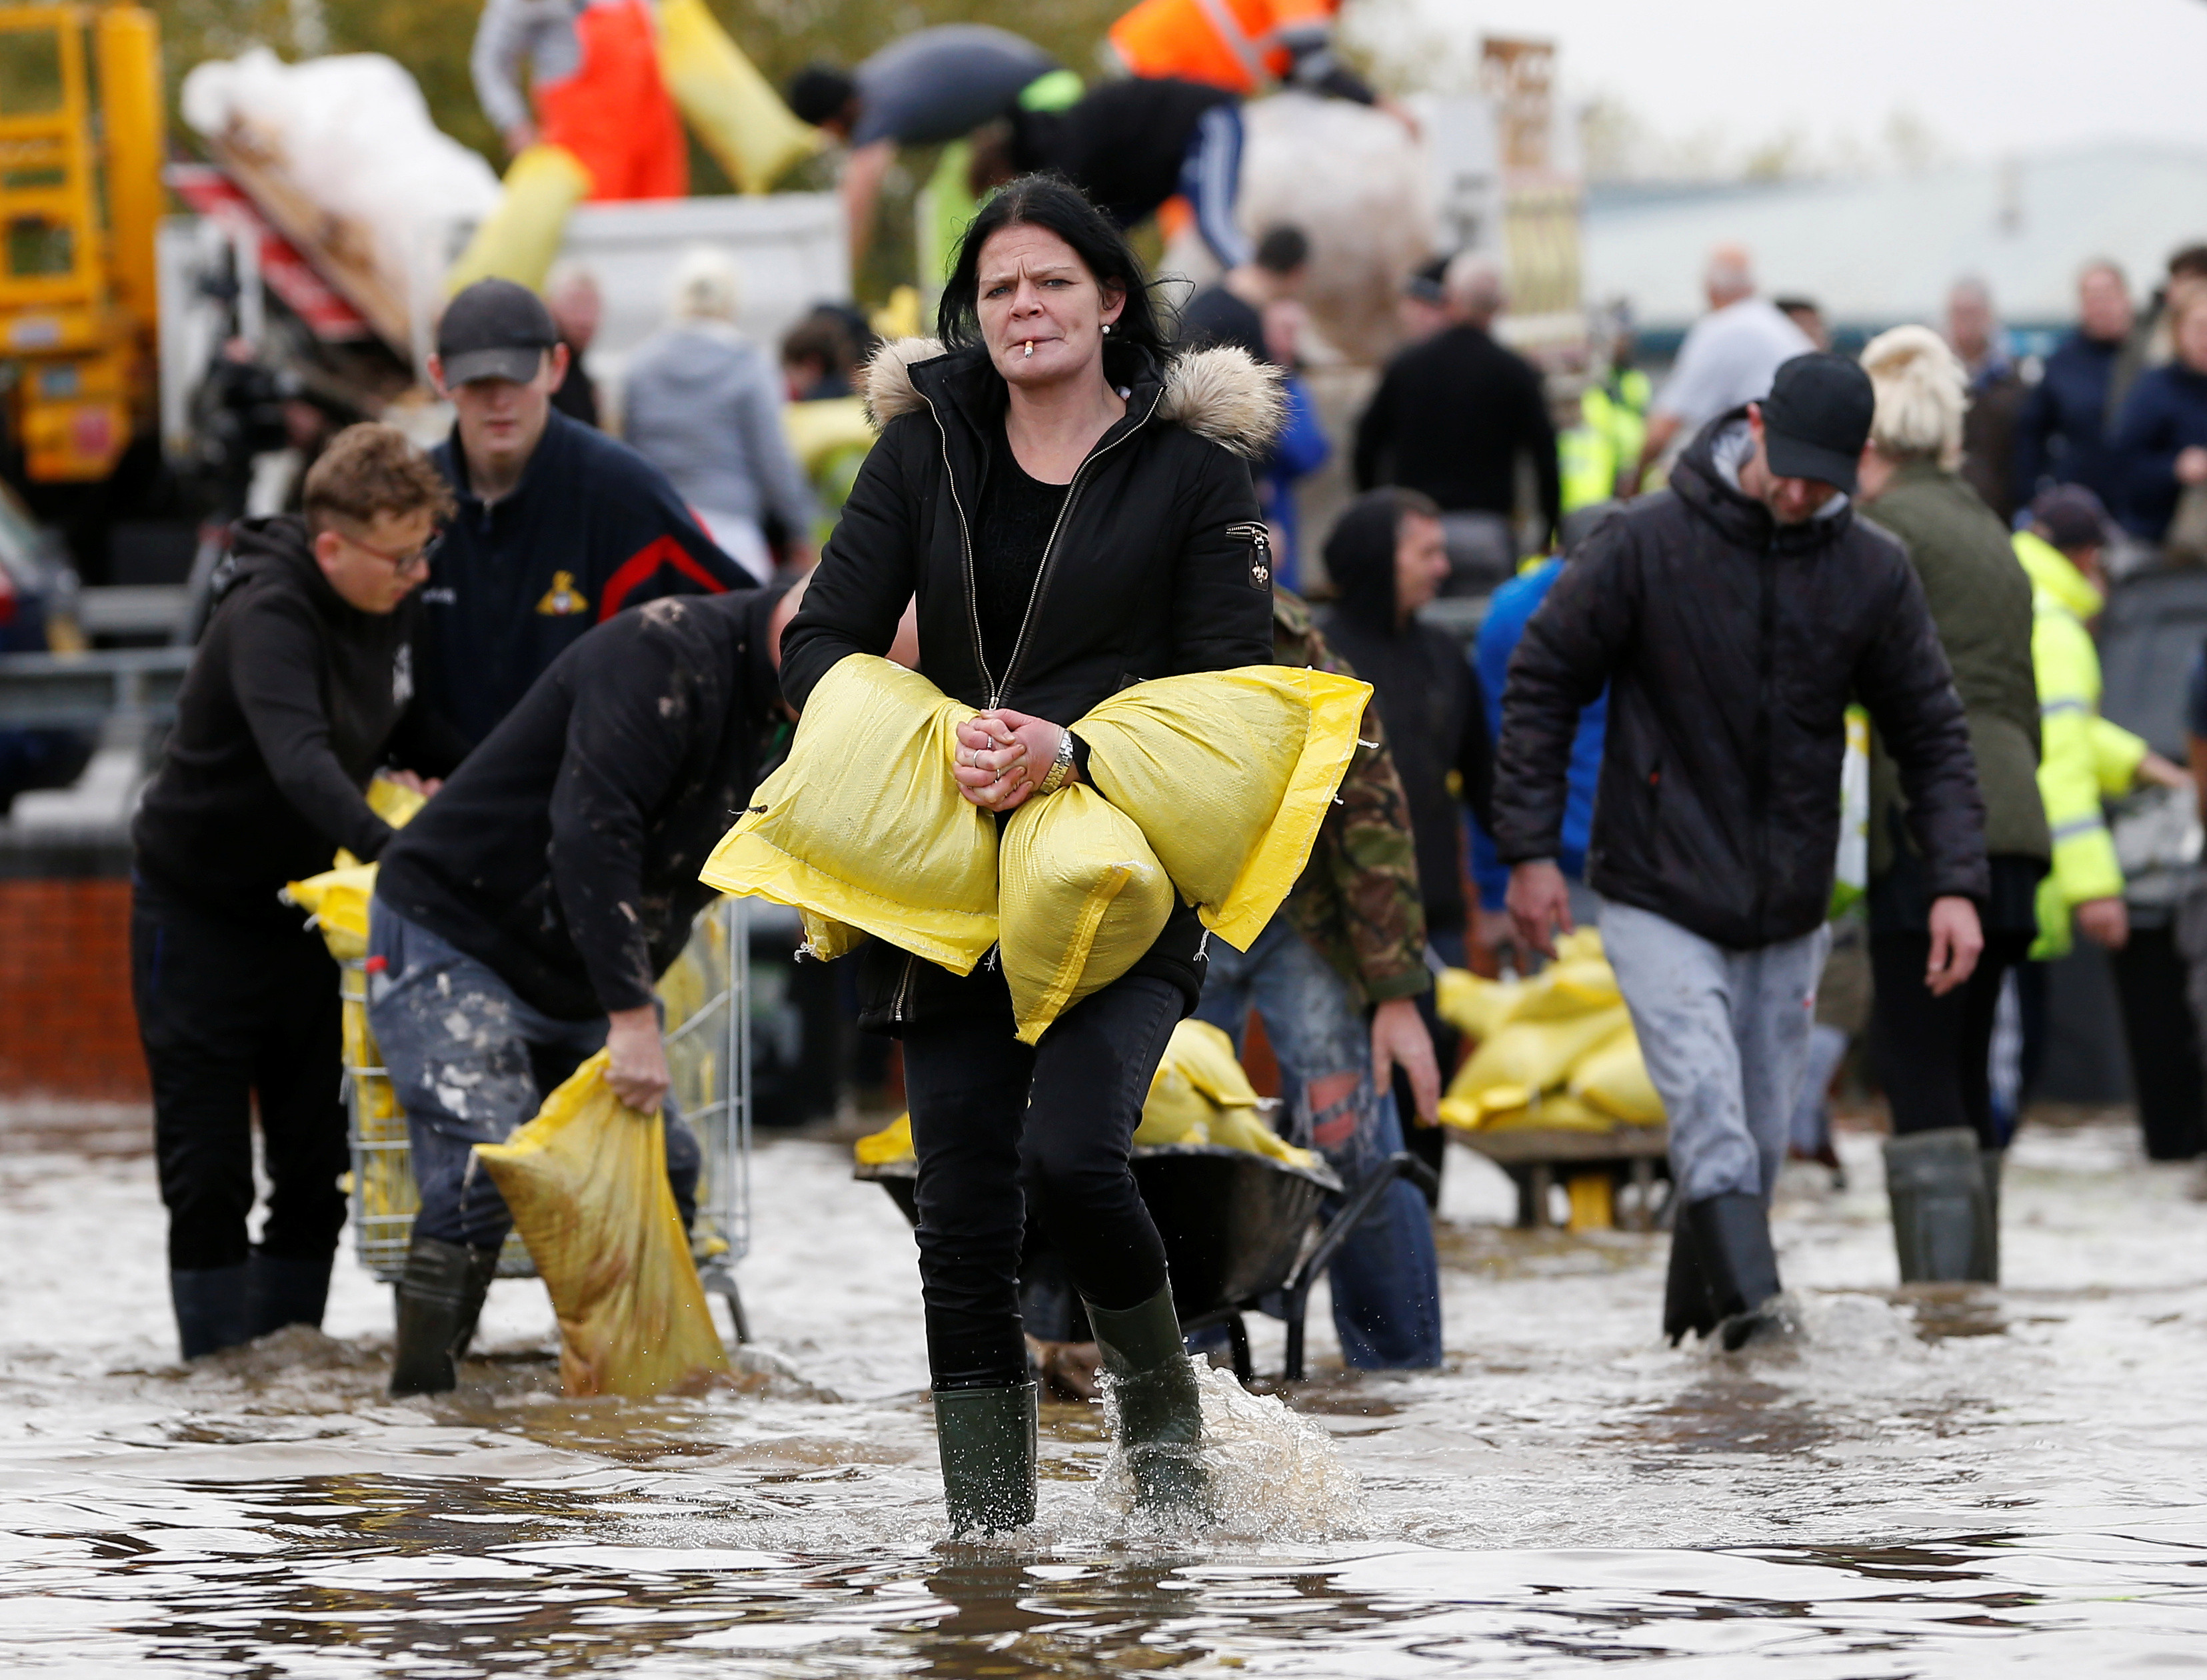 Residents carry sandbags in a flooded area of Bentley, north of Doncaster